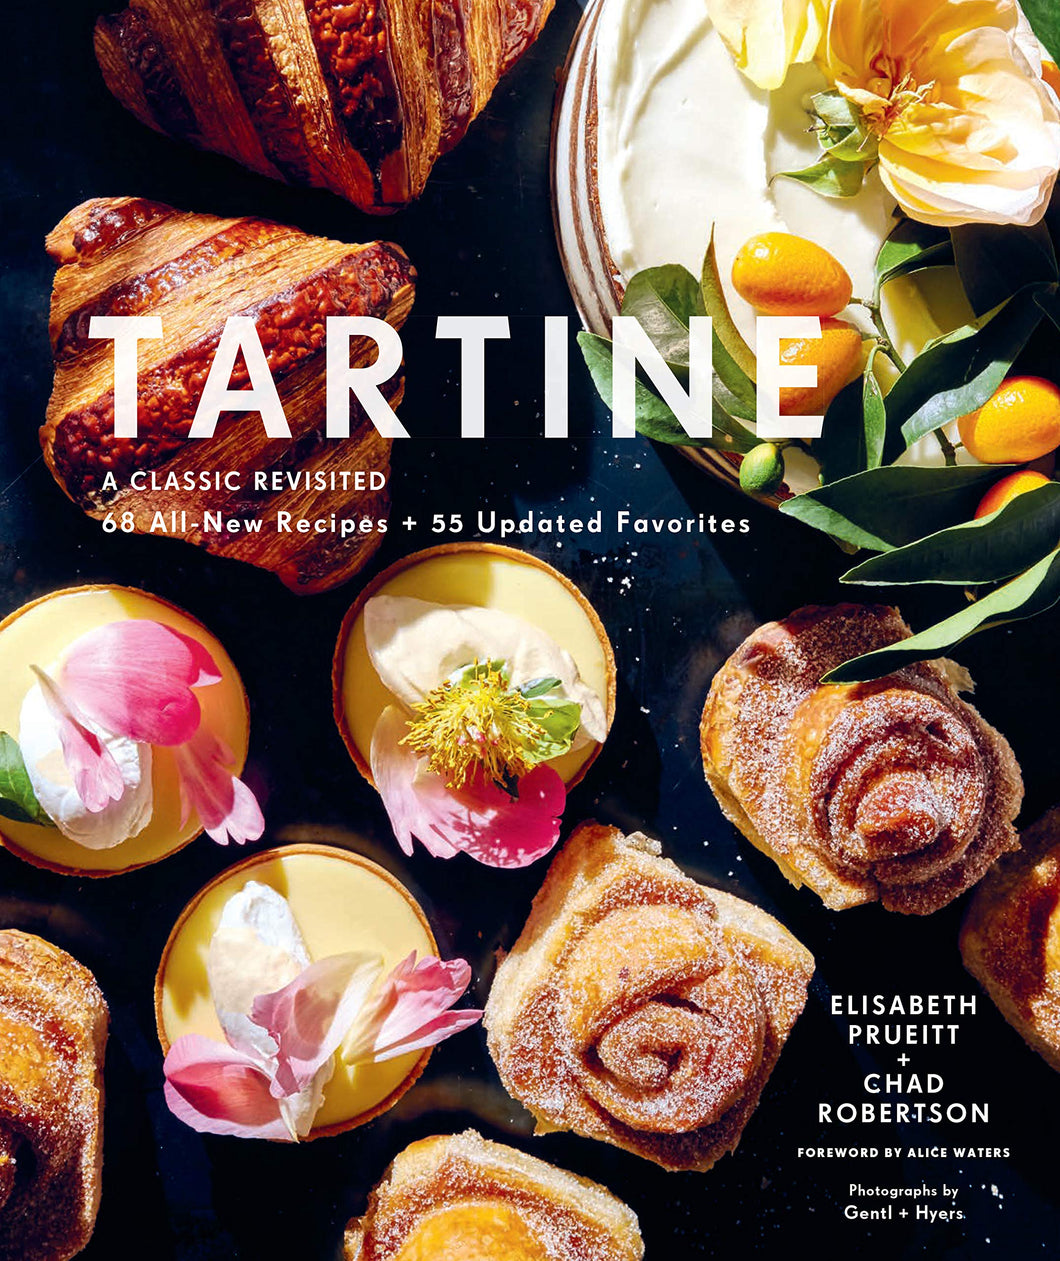 Tartine: A Classic Revisited - 68 All-New Recipes + 55 Updated Favorites